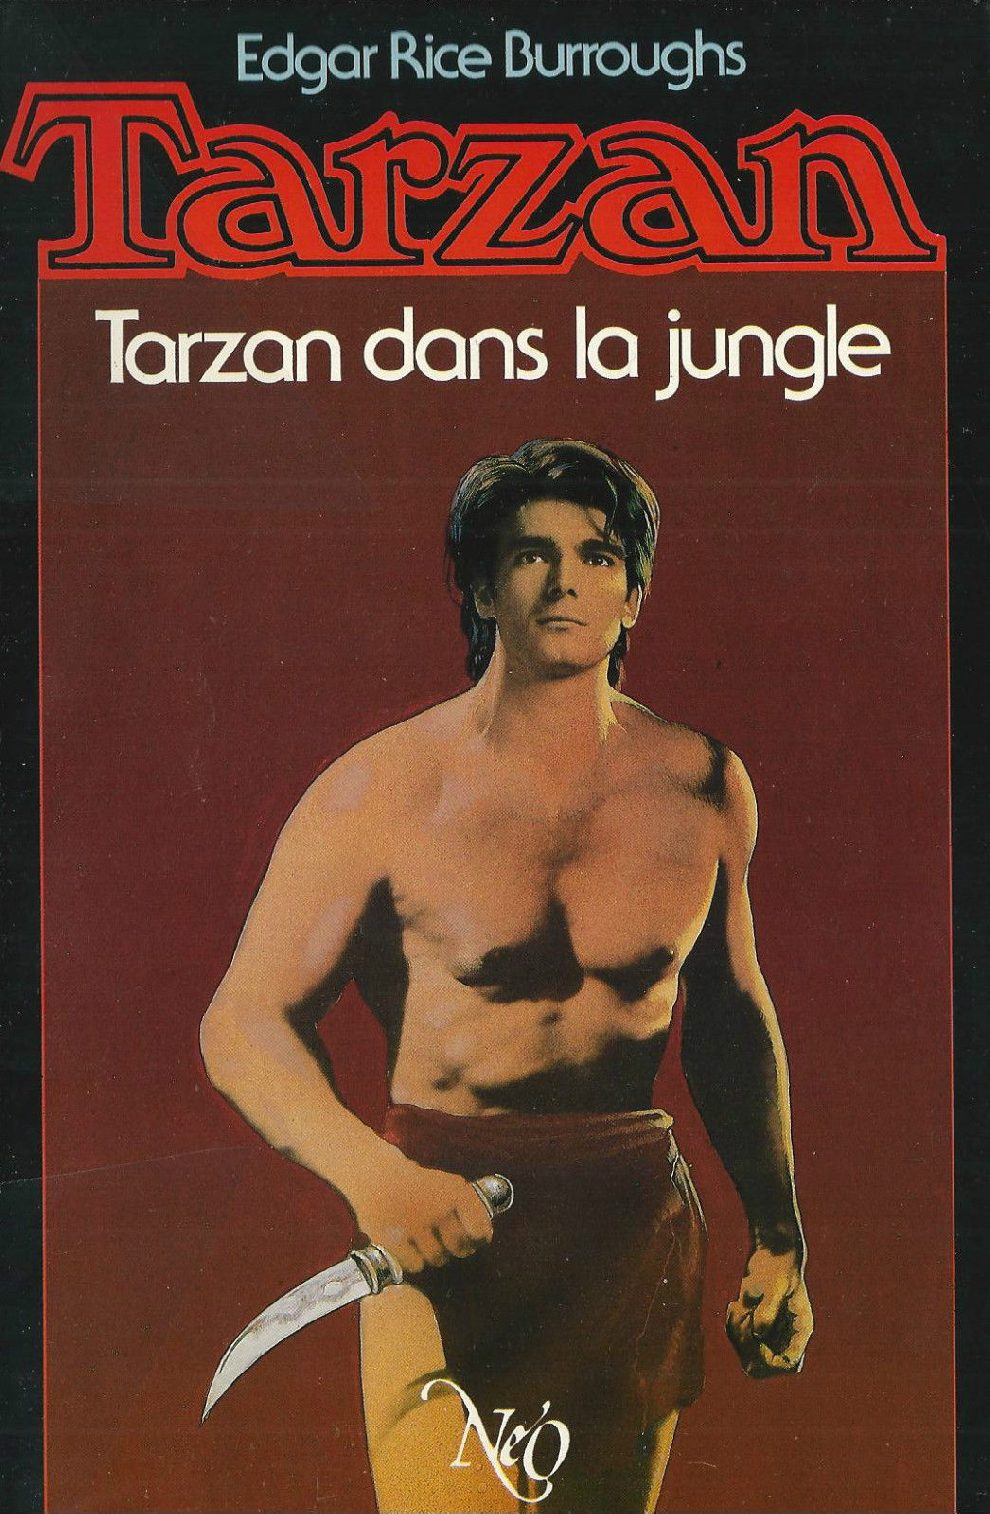 'Tarzan's Jungle Dance'